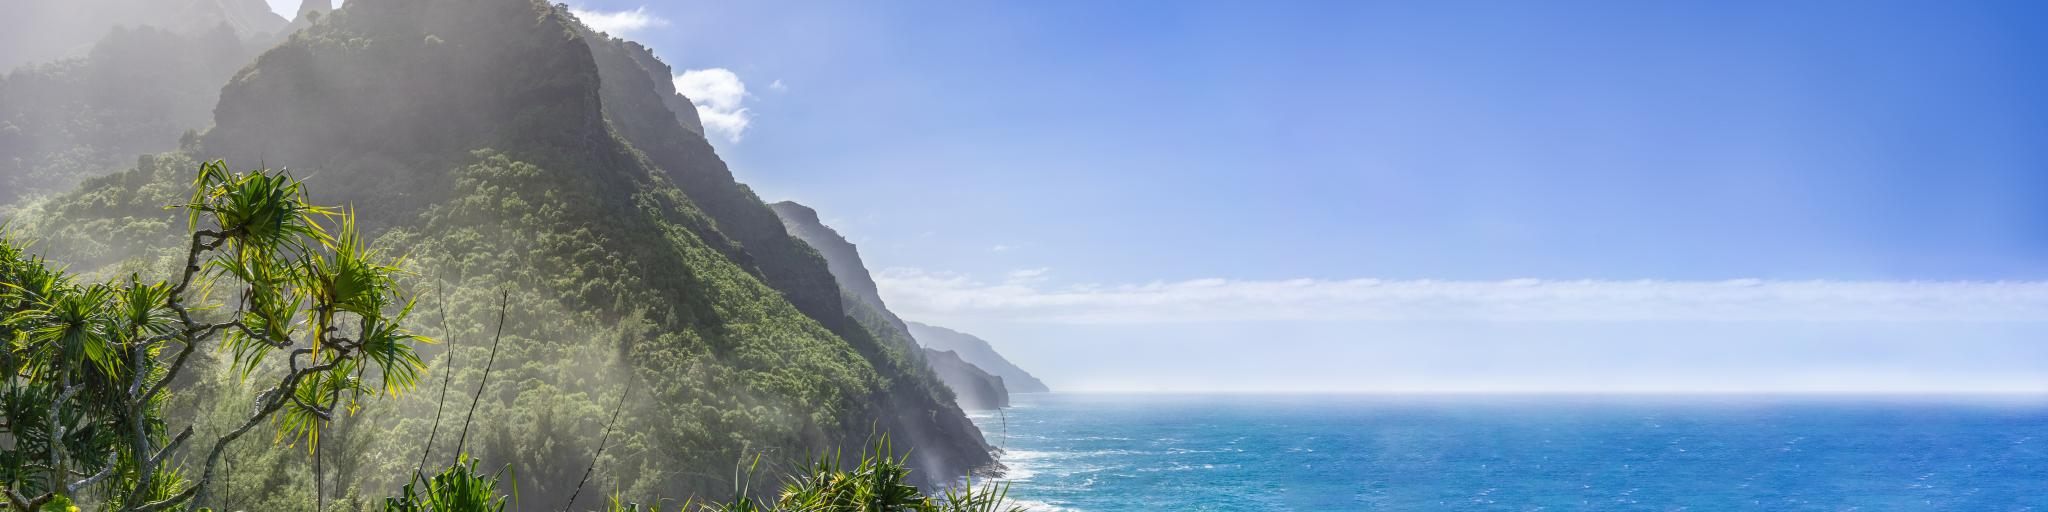 Cliffs facing the ocean in Na Pali Coast State Park on Kauai island in Hawaii